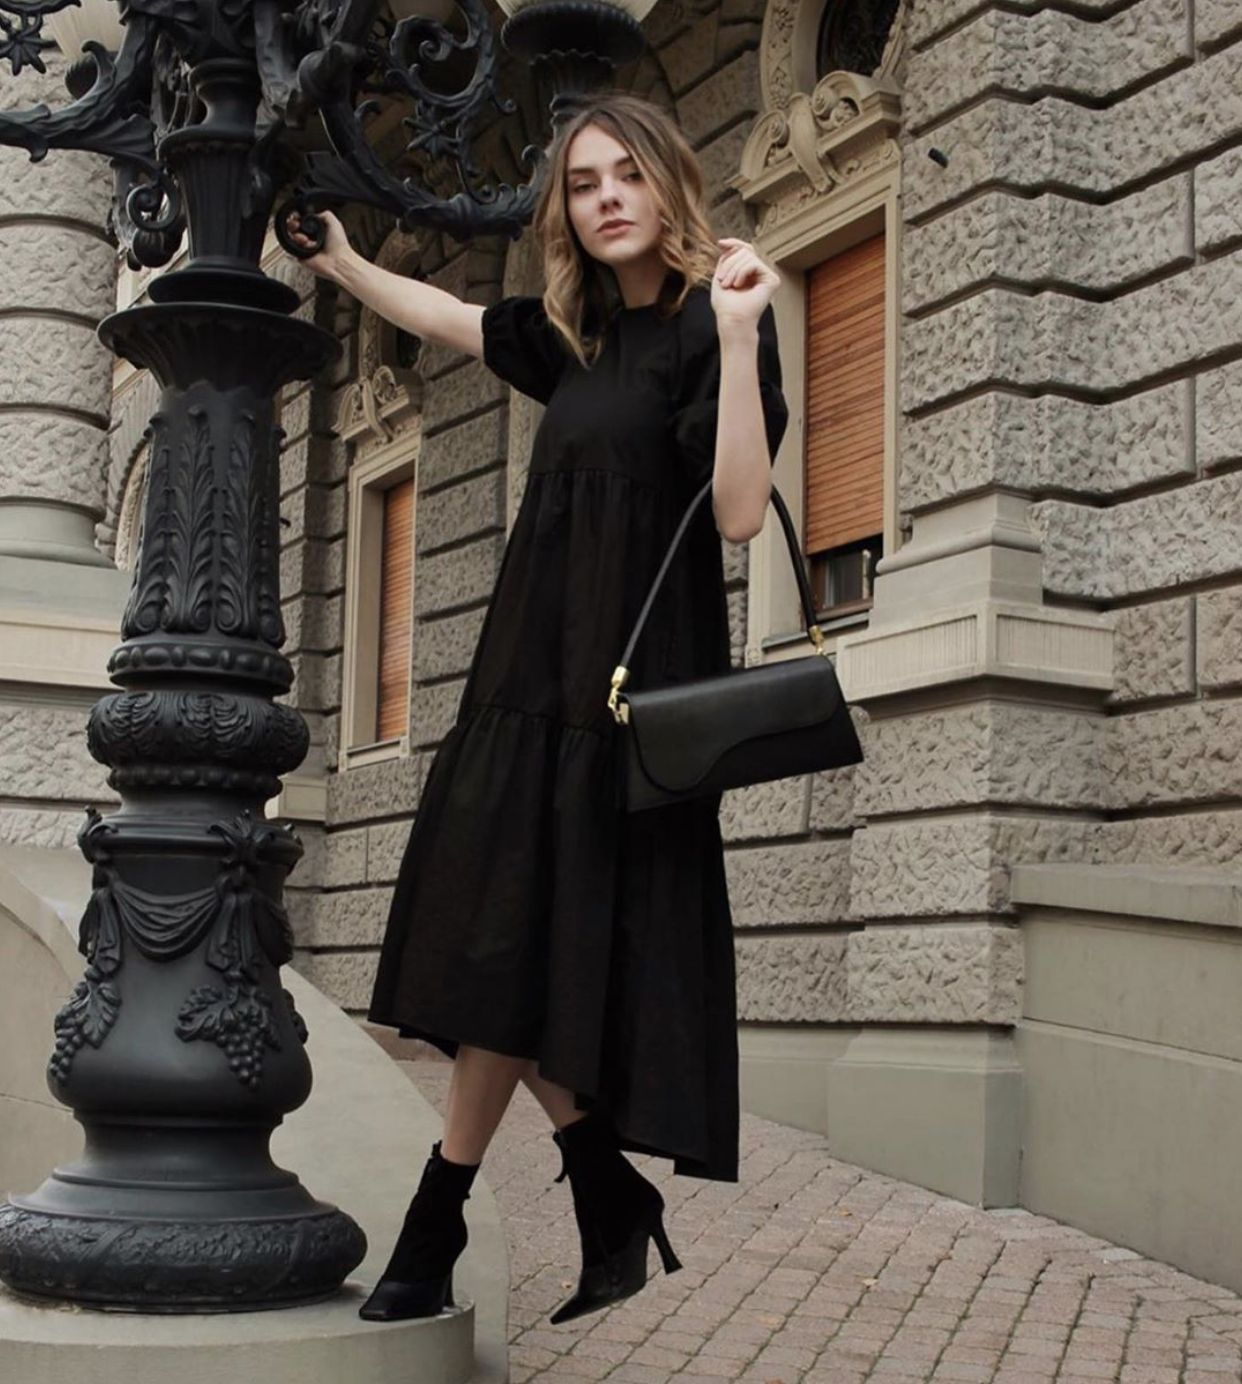 Black Tall Outfit For You Lady Fashion Outfits Outfits Fashion [ 1384 x 1242 Pixel ]